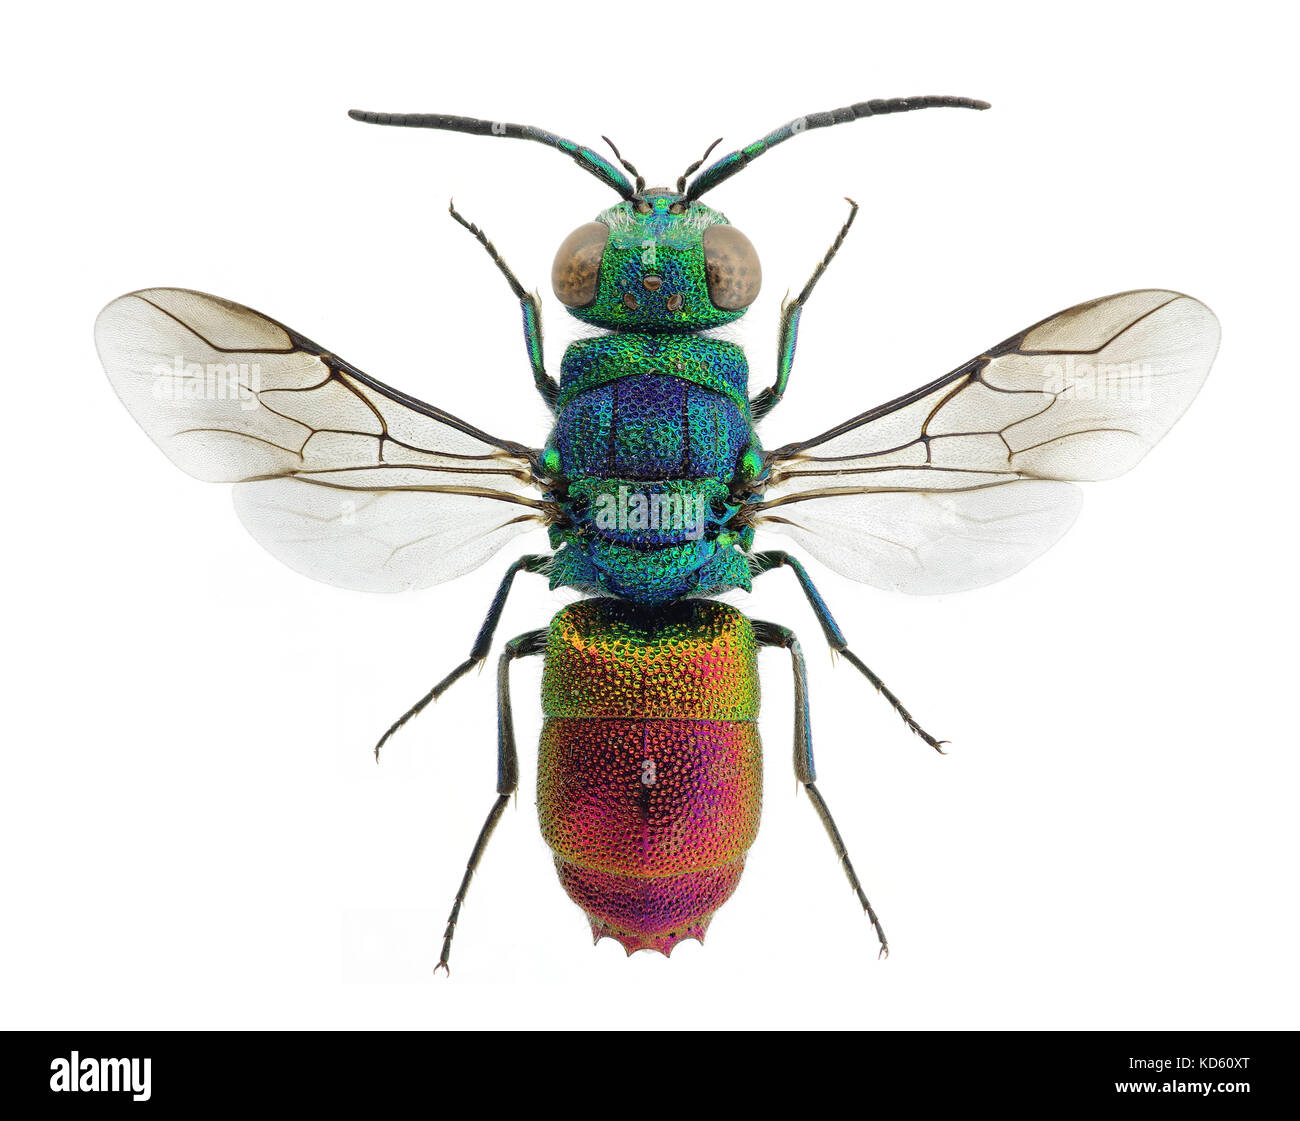 Beautiful cuckoo wasp Chrysis comta, from Europe - Stock Image